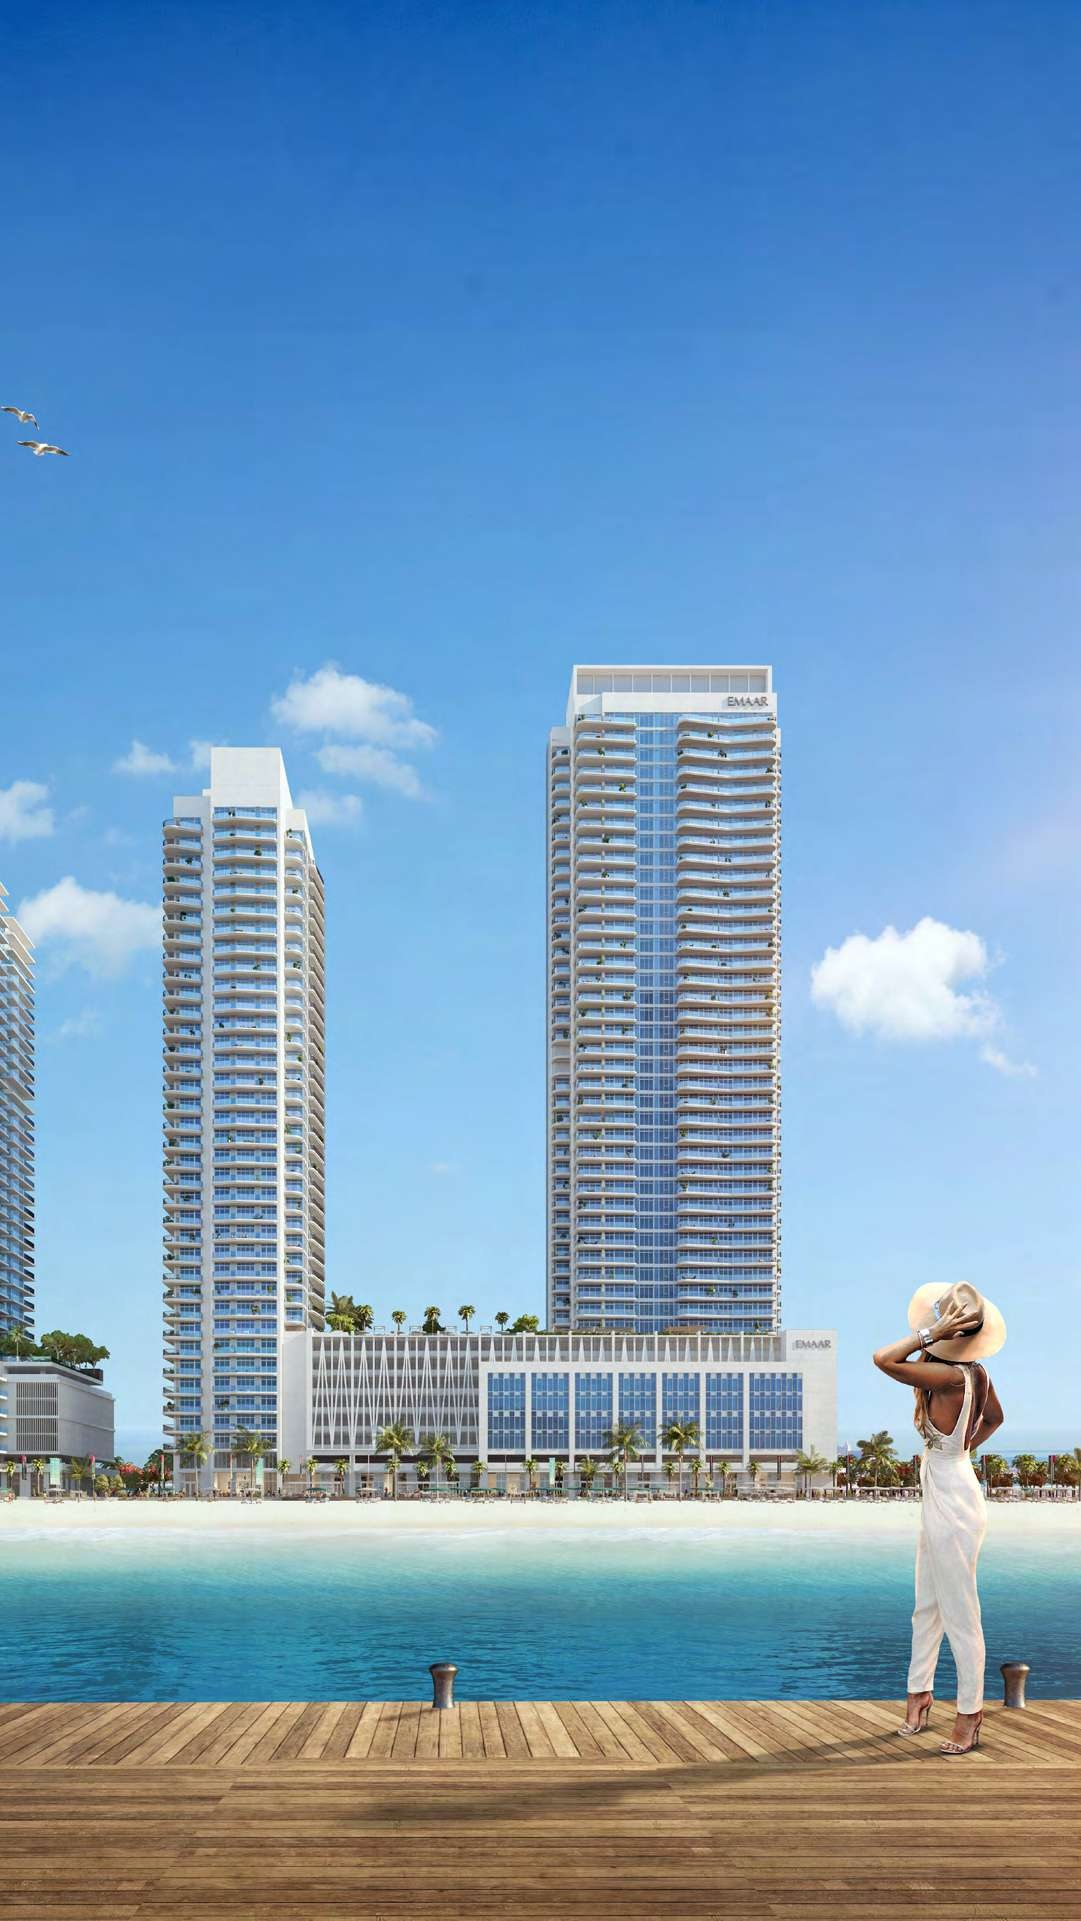 MIAMI STYLE LIVING /Marina Vista at Emaa